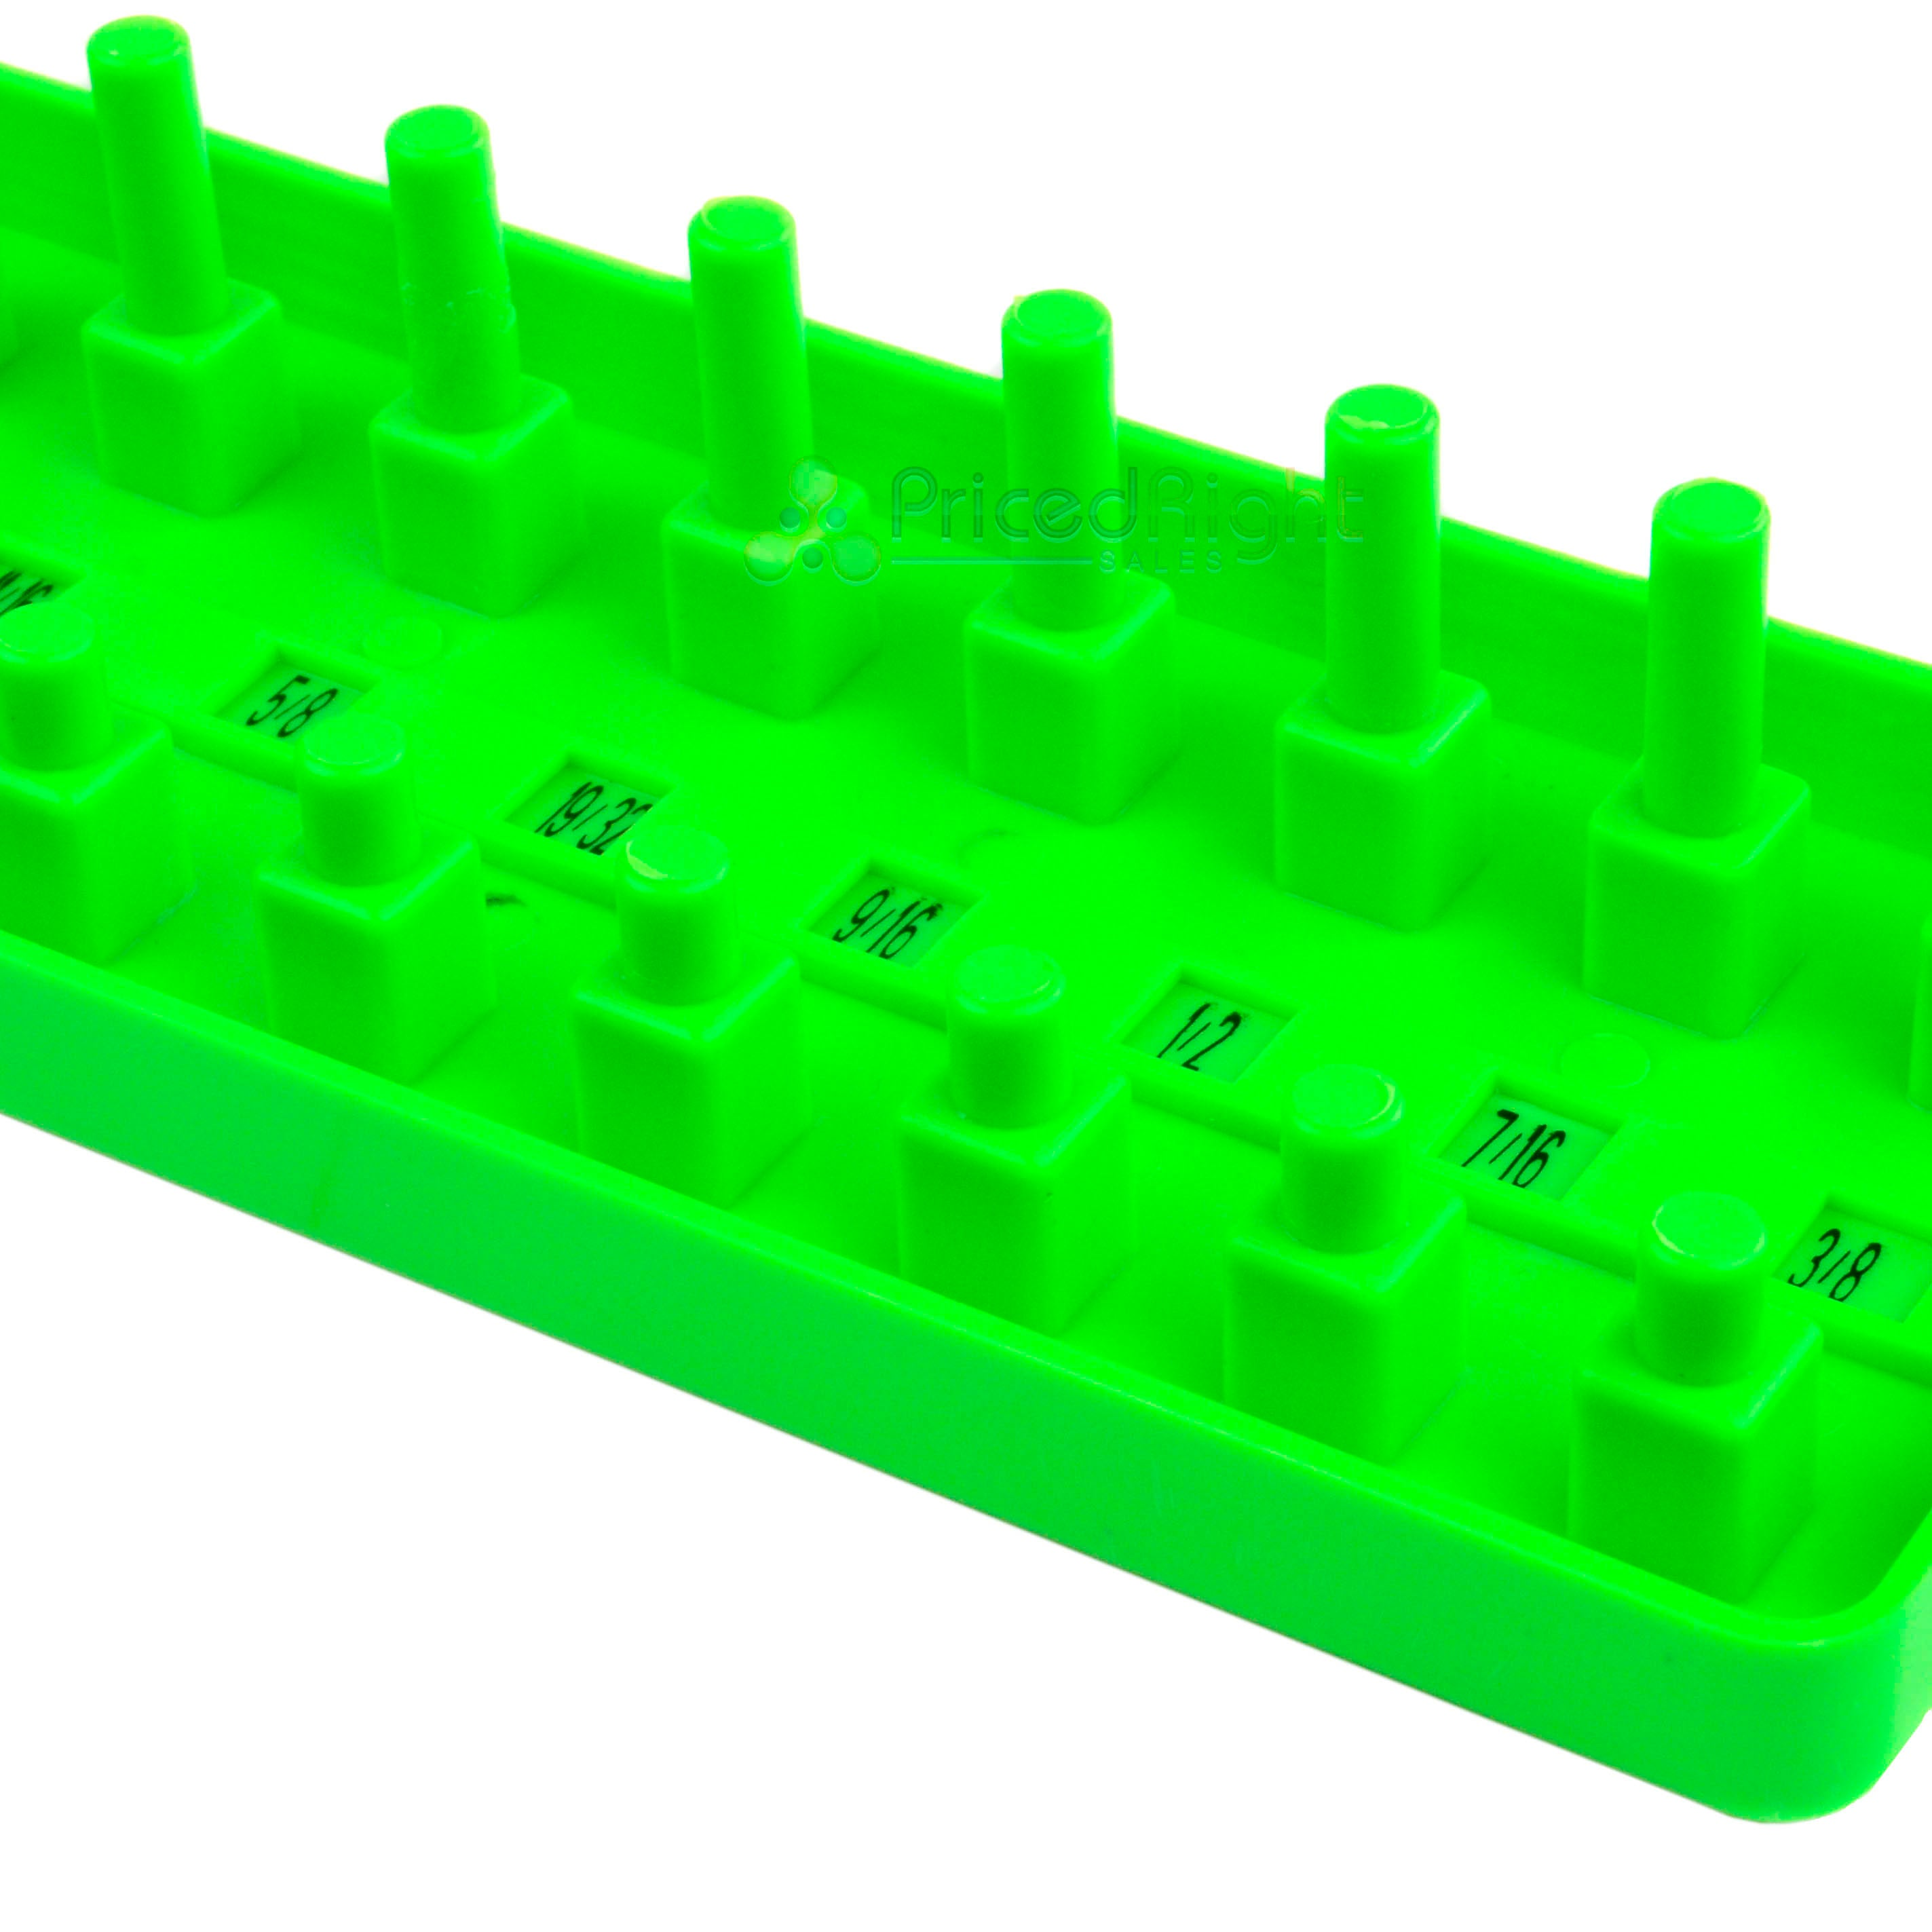 "GRIP 1/2"" 1/4"" 3/8"" Socket Tray Holder Metric SAE Organizer Universal Green"